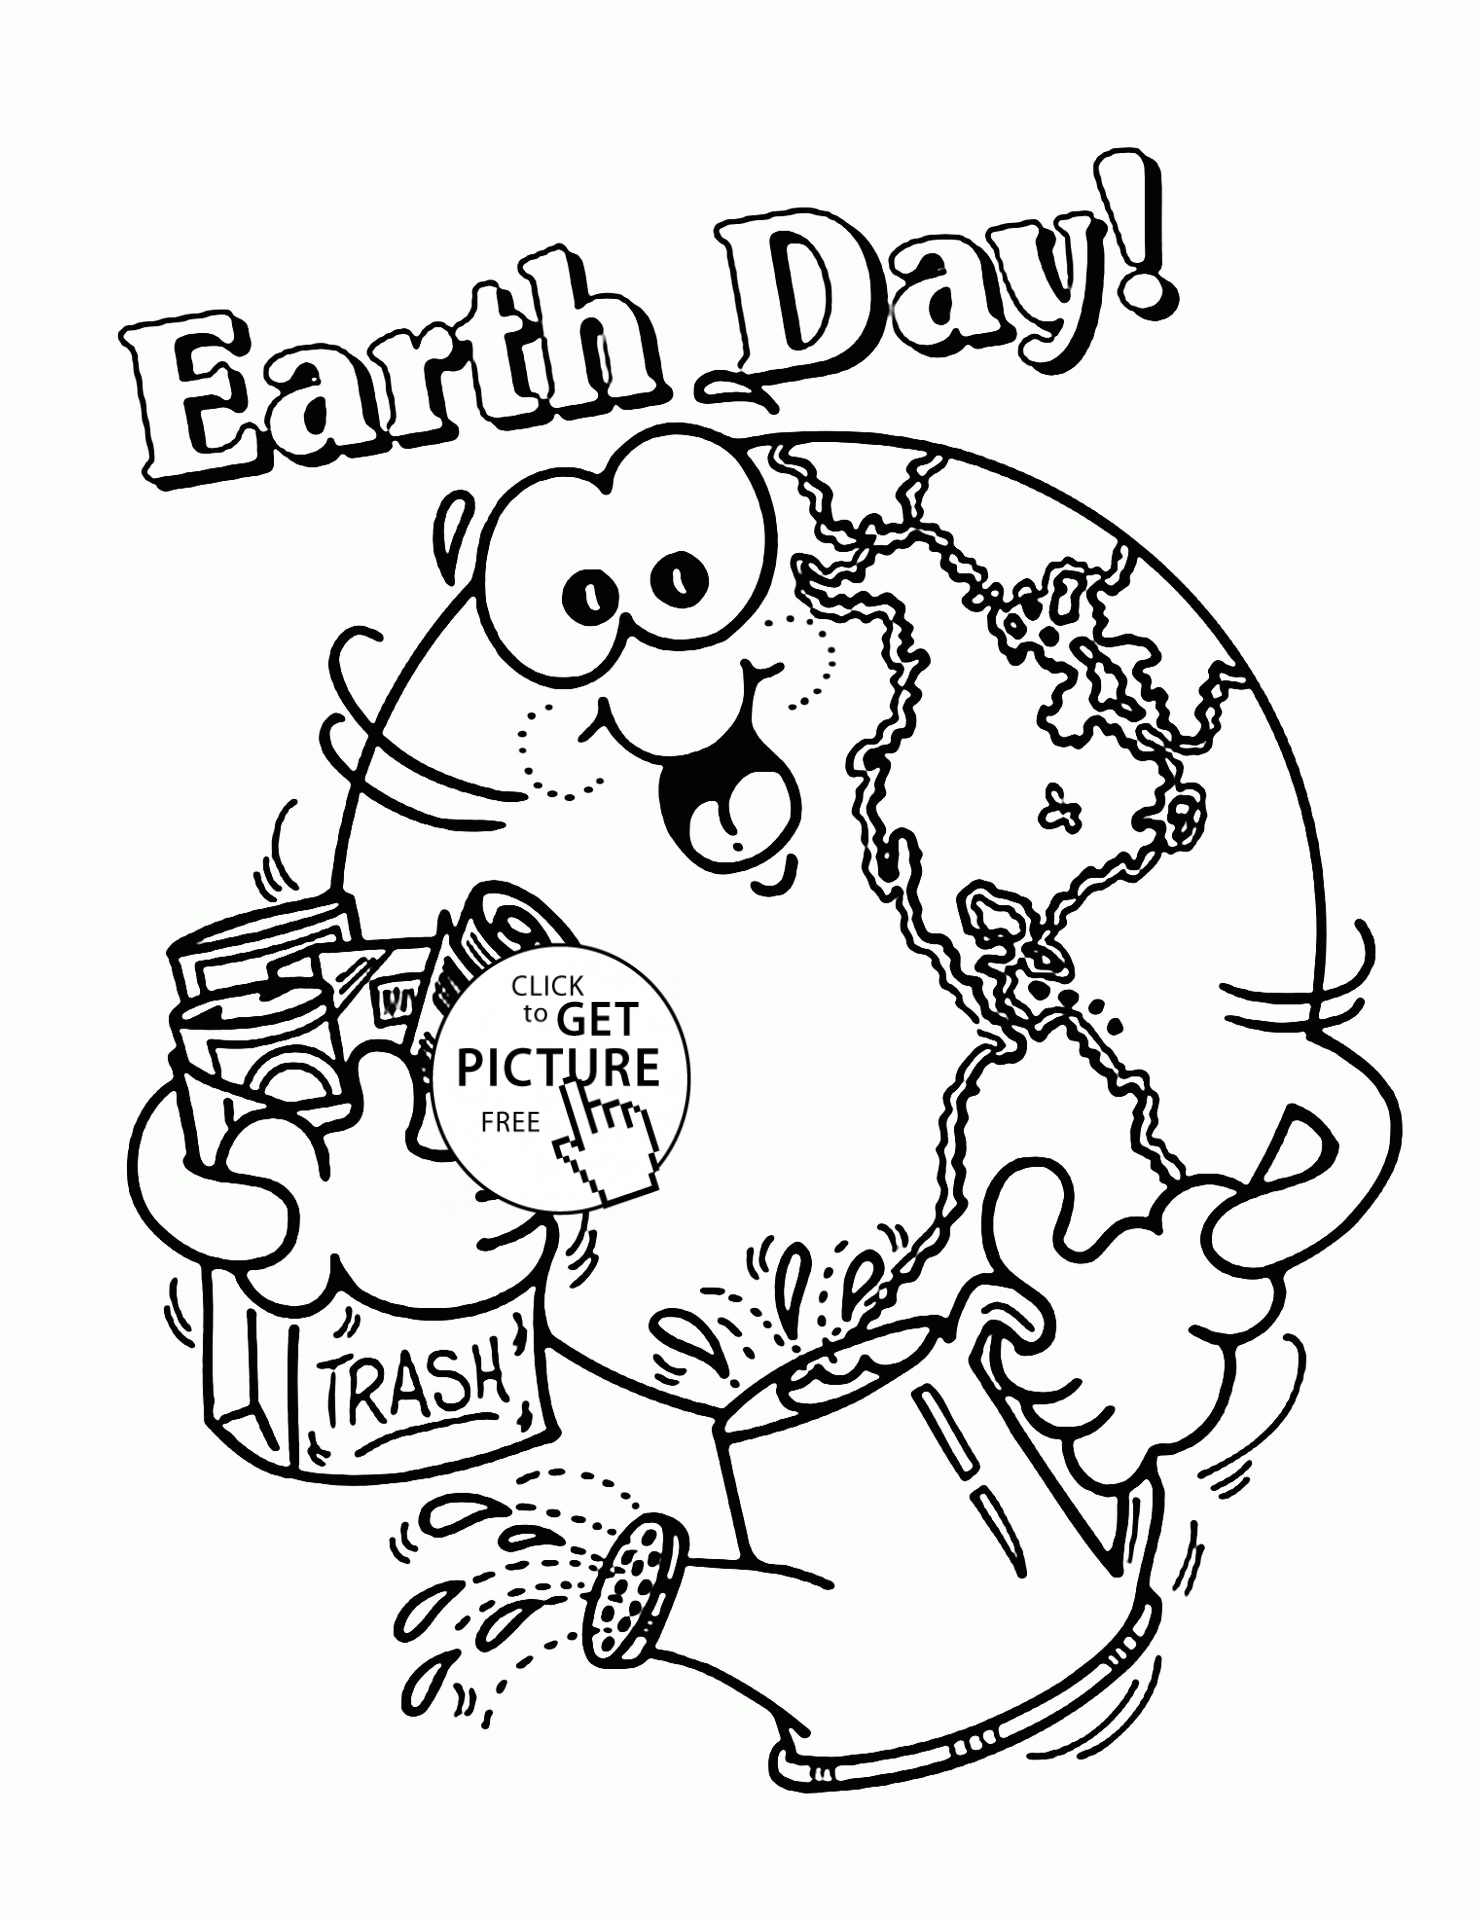 earth day coloring pages - happy earth earth day coloring page for kids coloring pages printables free